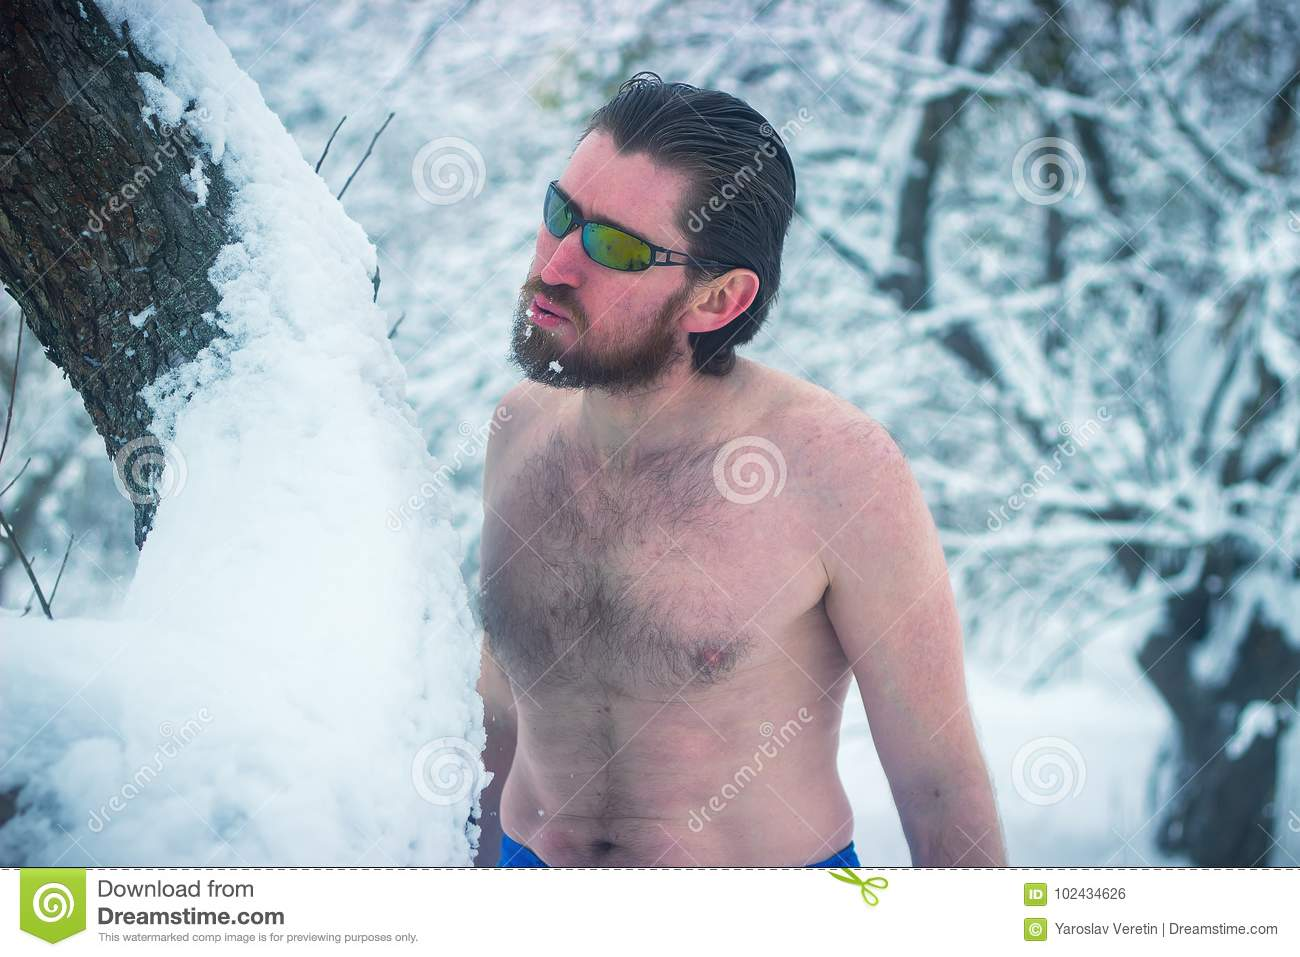 Something is. photos of naked men in the snow impudence! This